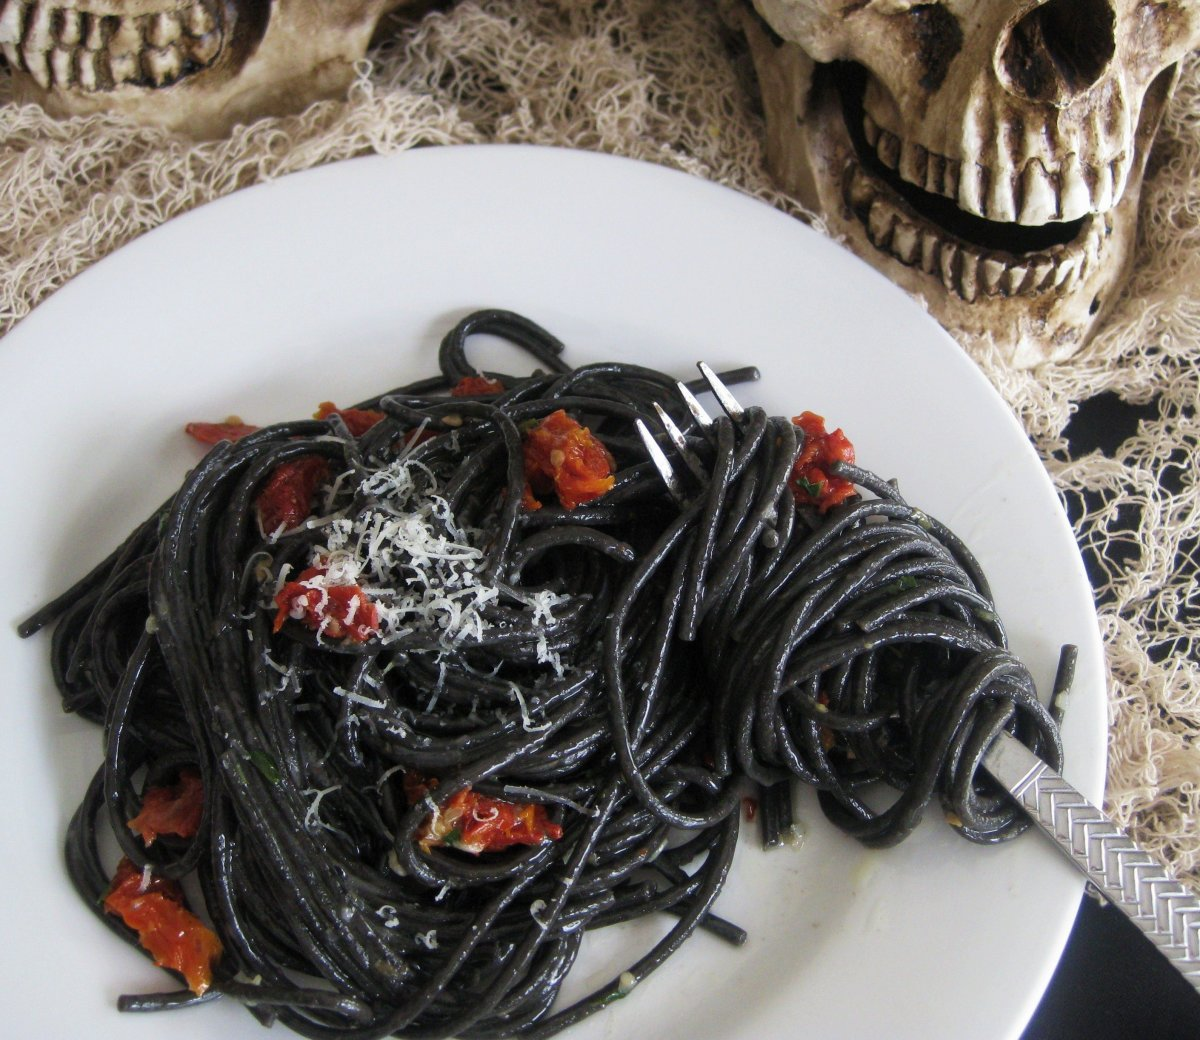 Squid ink pasta is actually considered a gourmet dish, but look at it, it is perfect for Halloween!